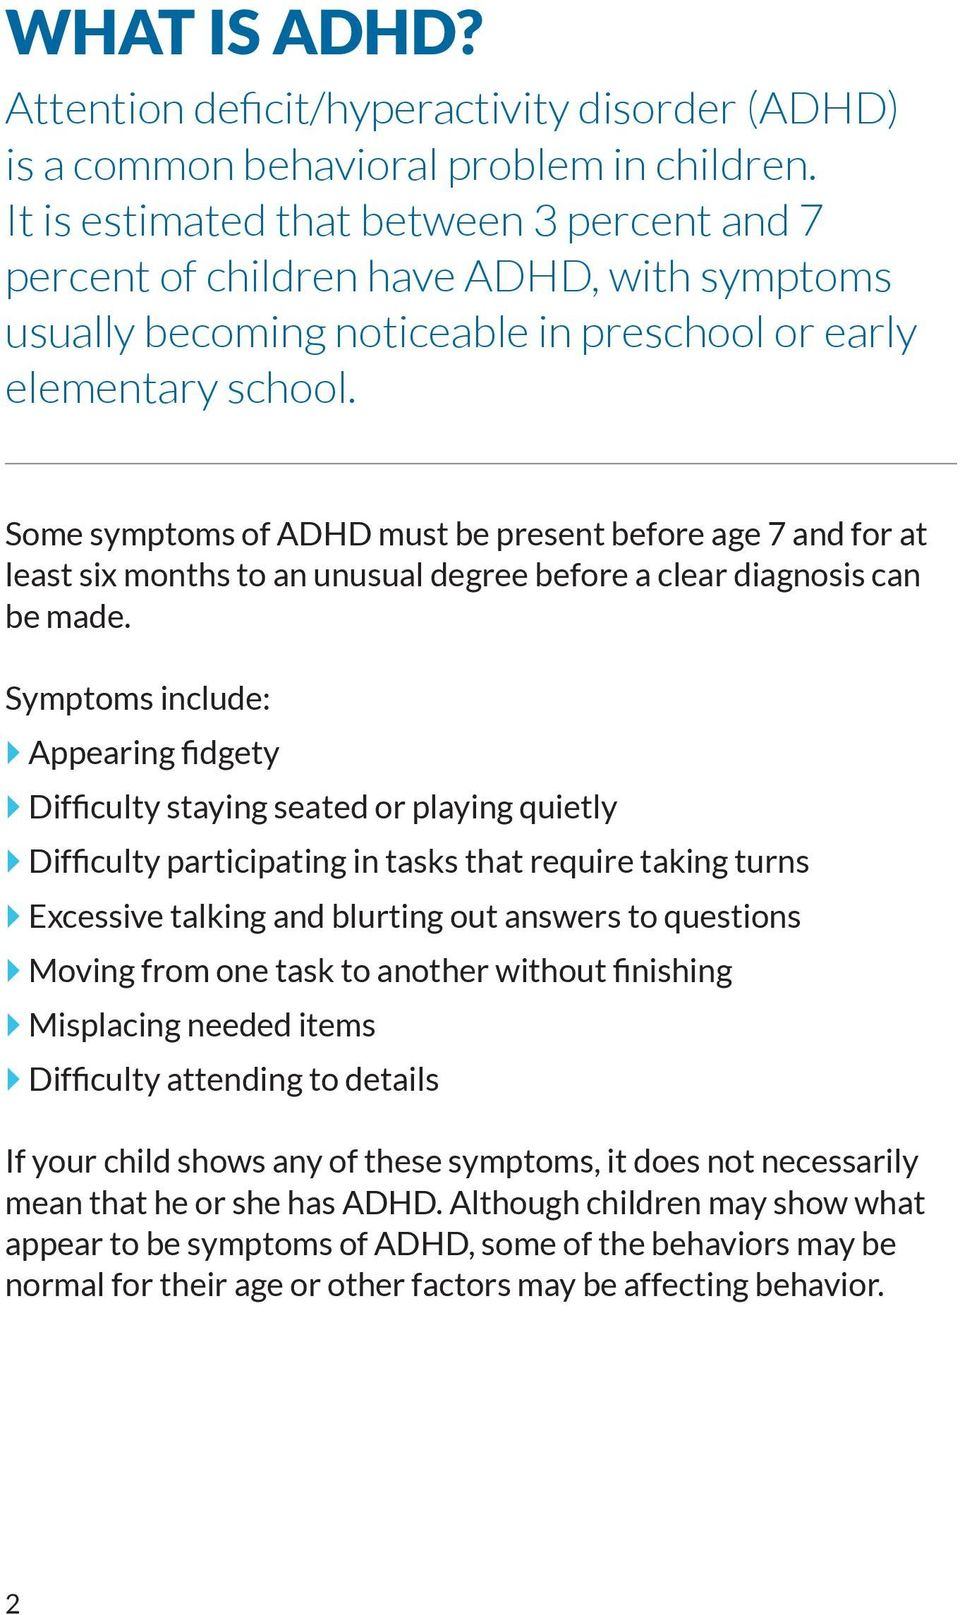 Some symptoms of ADHD must be present before age 7 and for at least six months to an unusual degree before a clear diagnosis can be made.